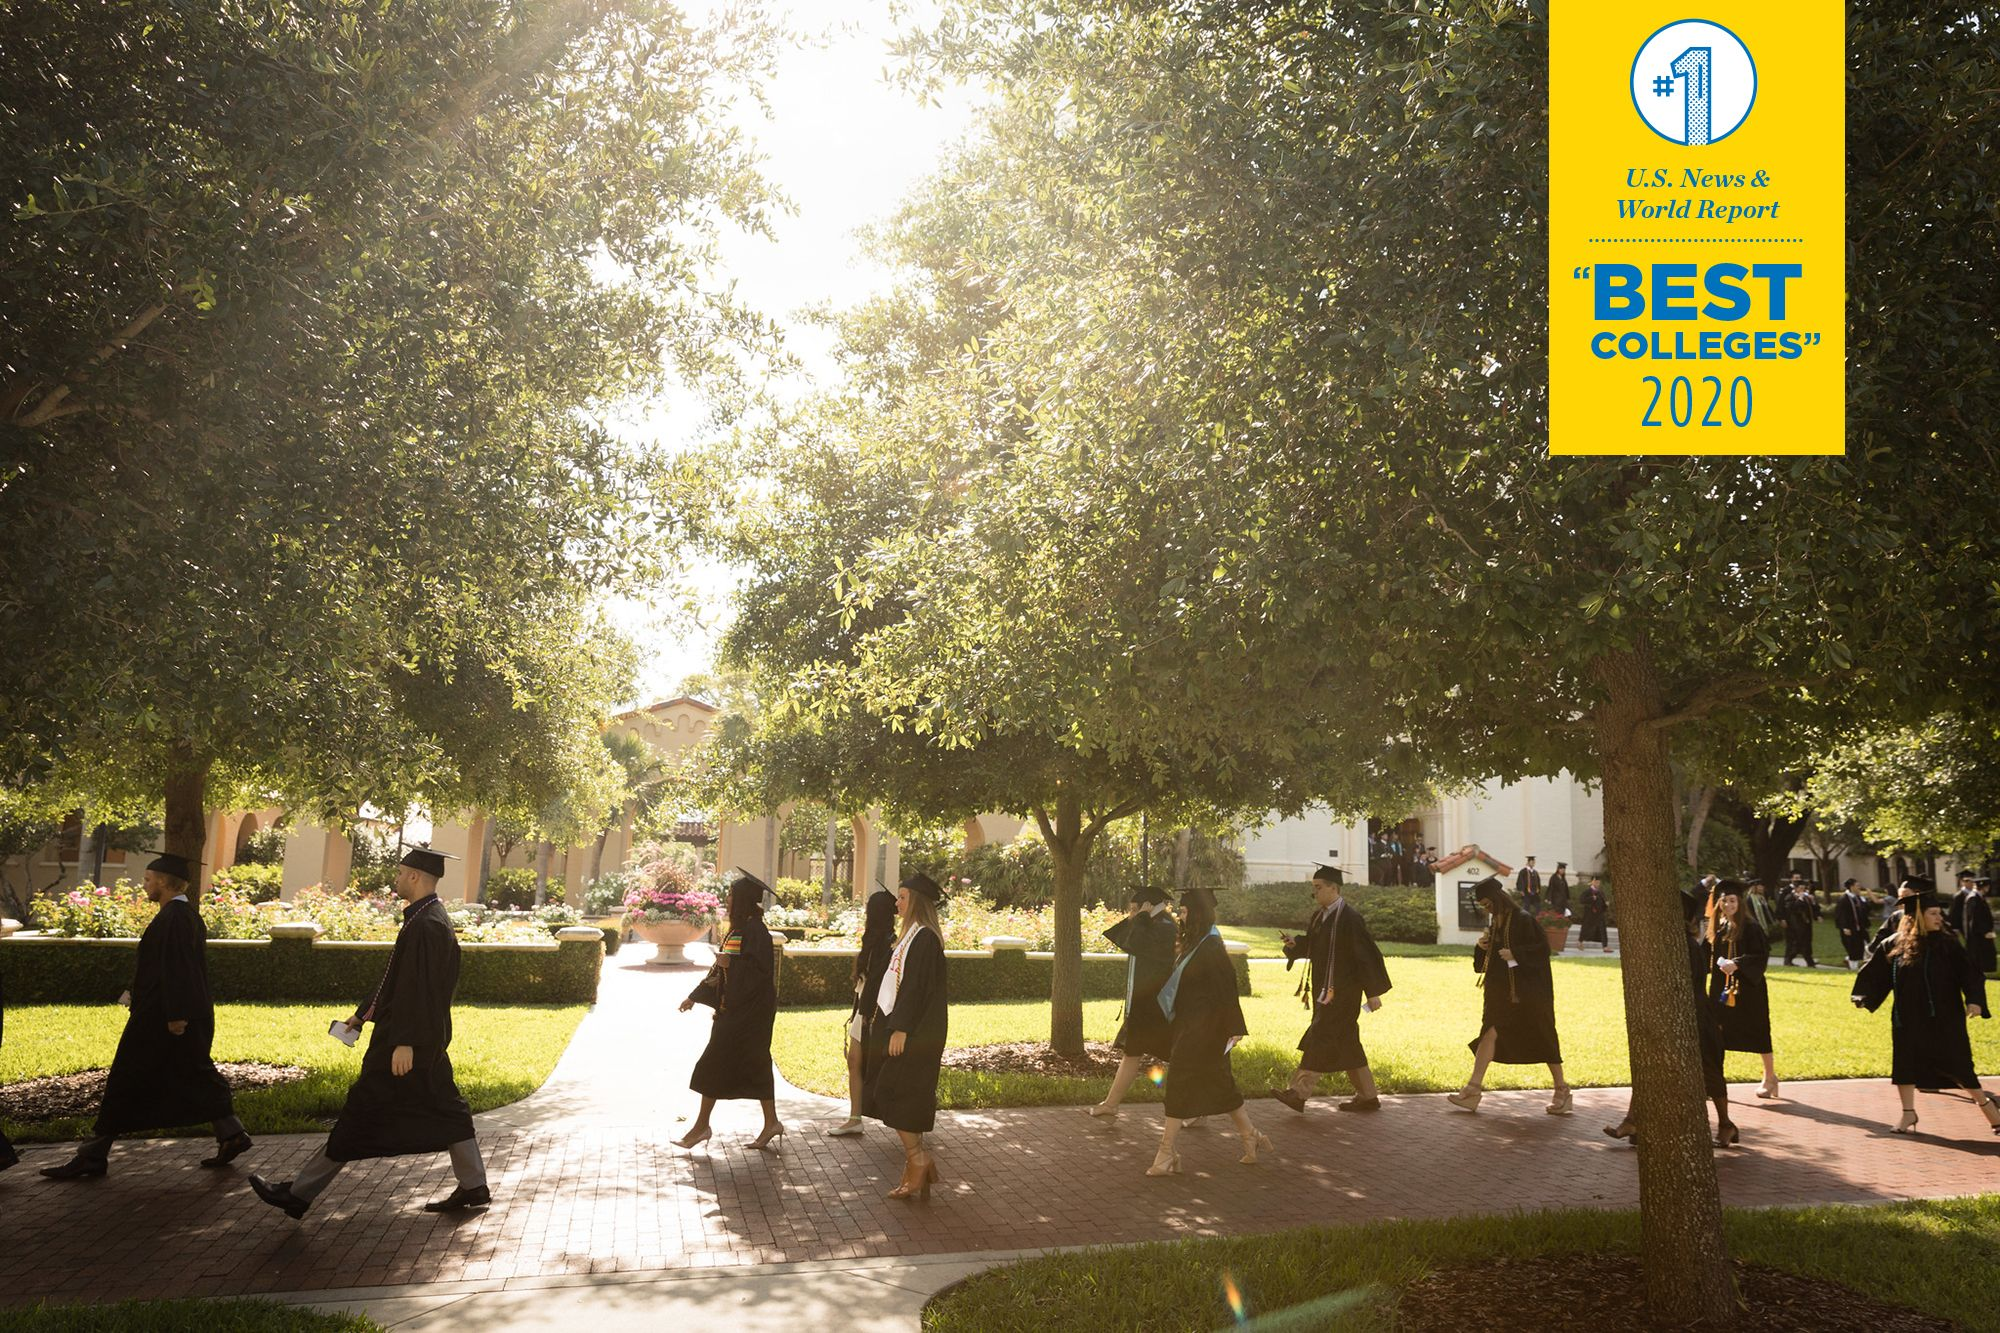 Rollins graduates walk past the iconic campus rose garden on their way to commencement.